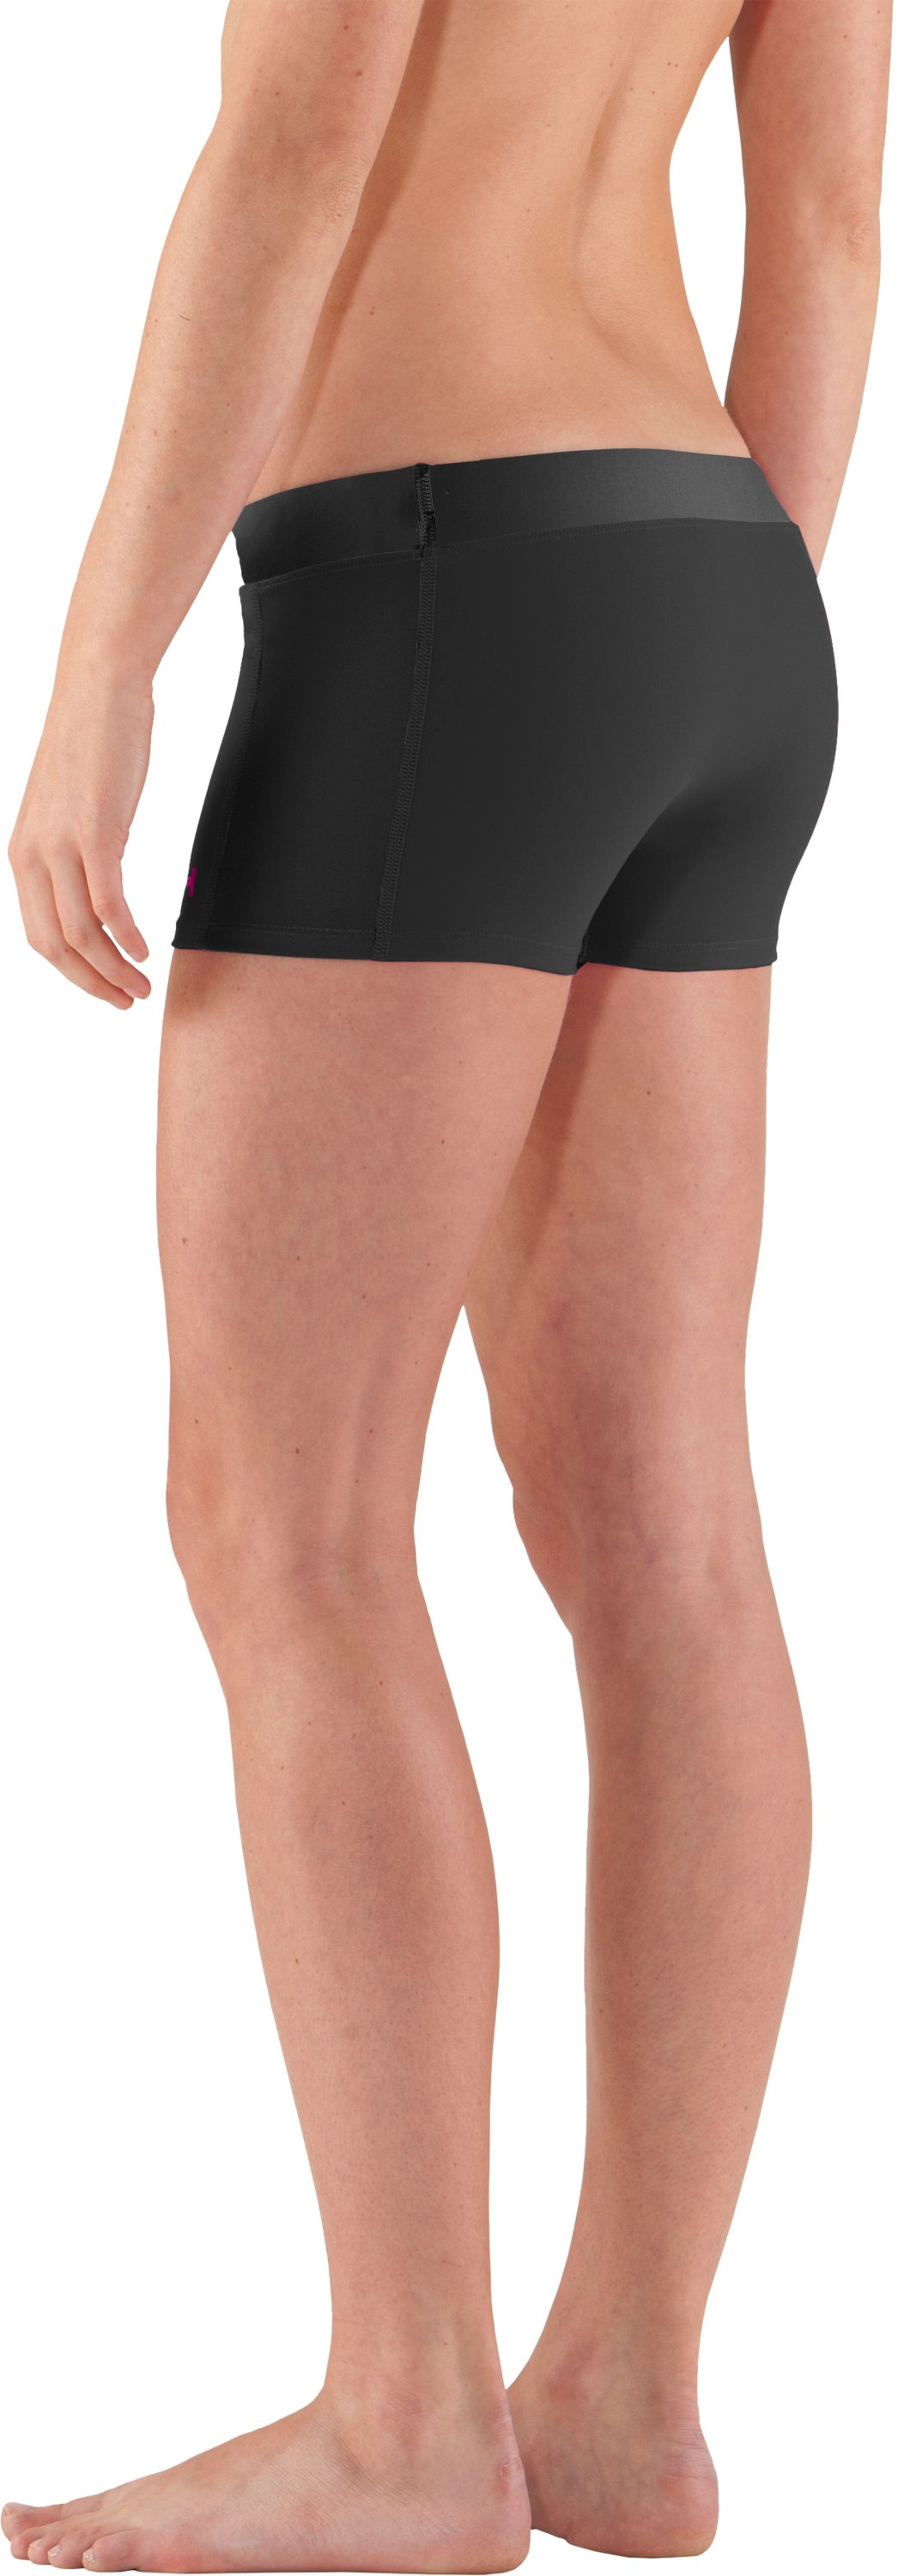 Women's Q-Lightful Shorts, Black , undefined